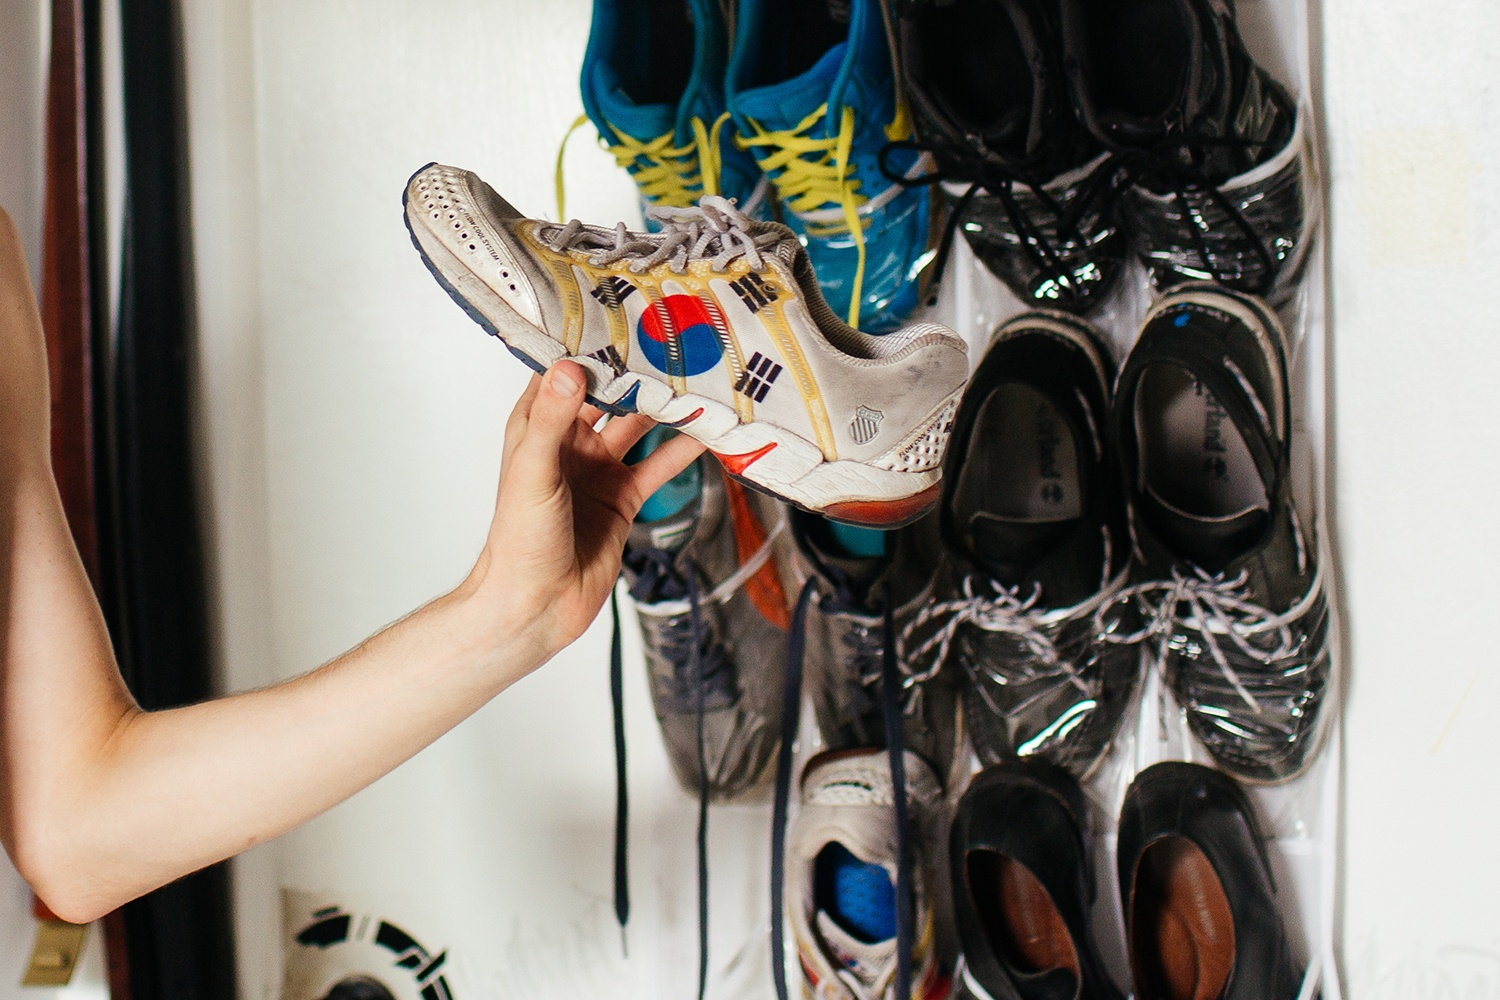 Artist-Chad-Lewine-Brooklyn-Navy-Yard-Loft-shoe-collection